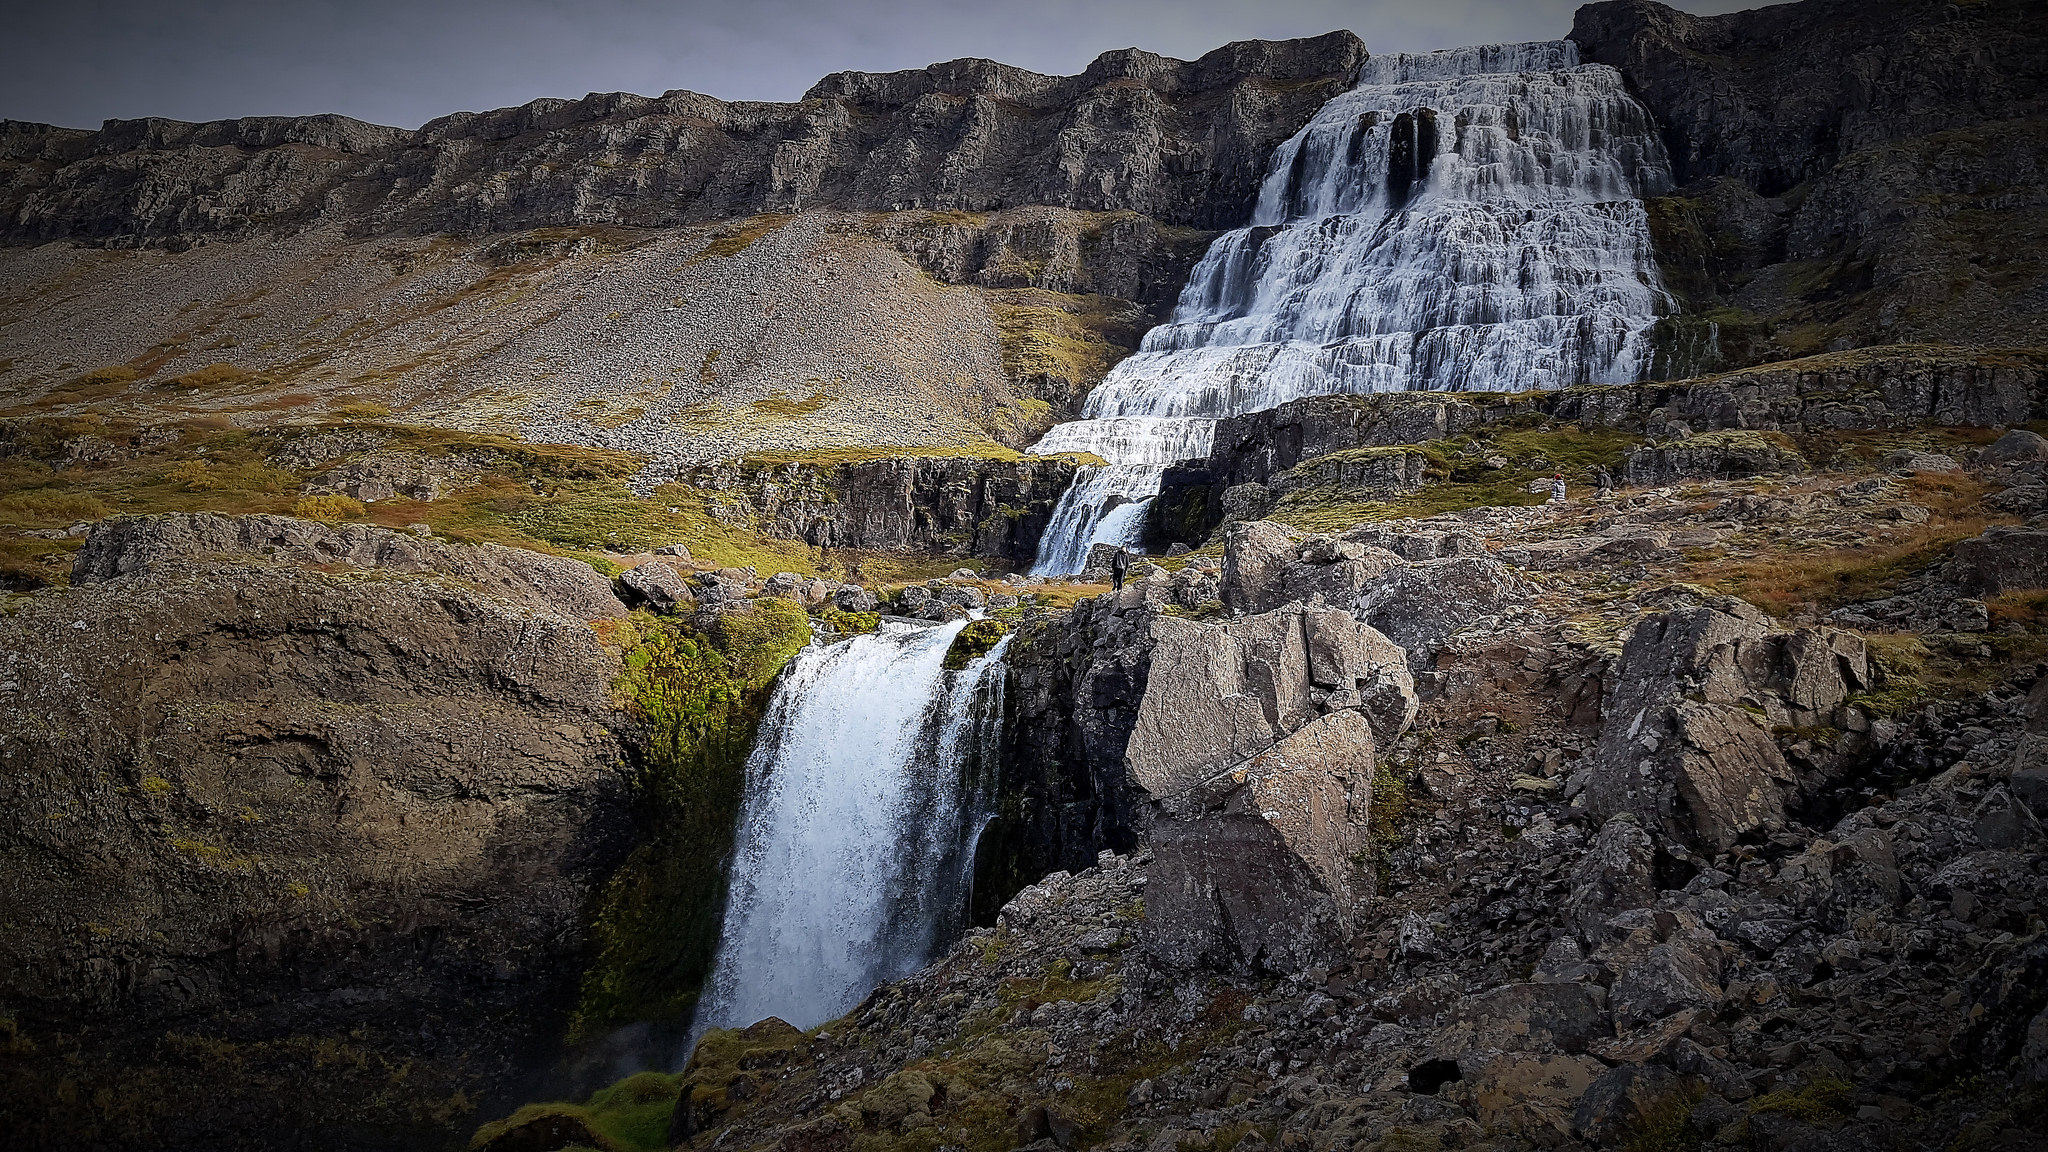 facilitator services - Is your company looking for facilitator services in Iceland. We specialize in asset management and are at your services